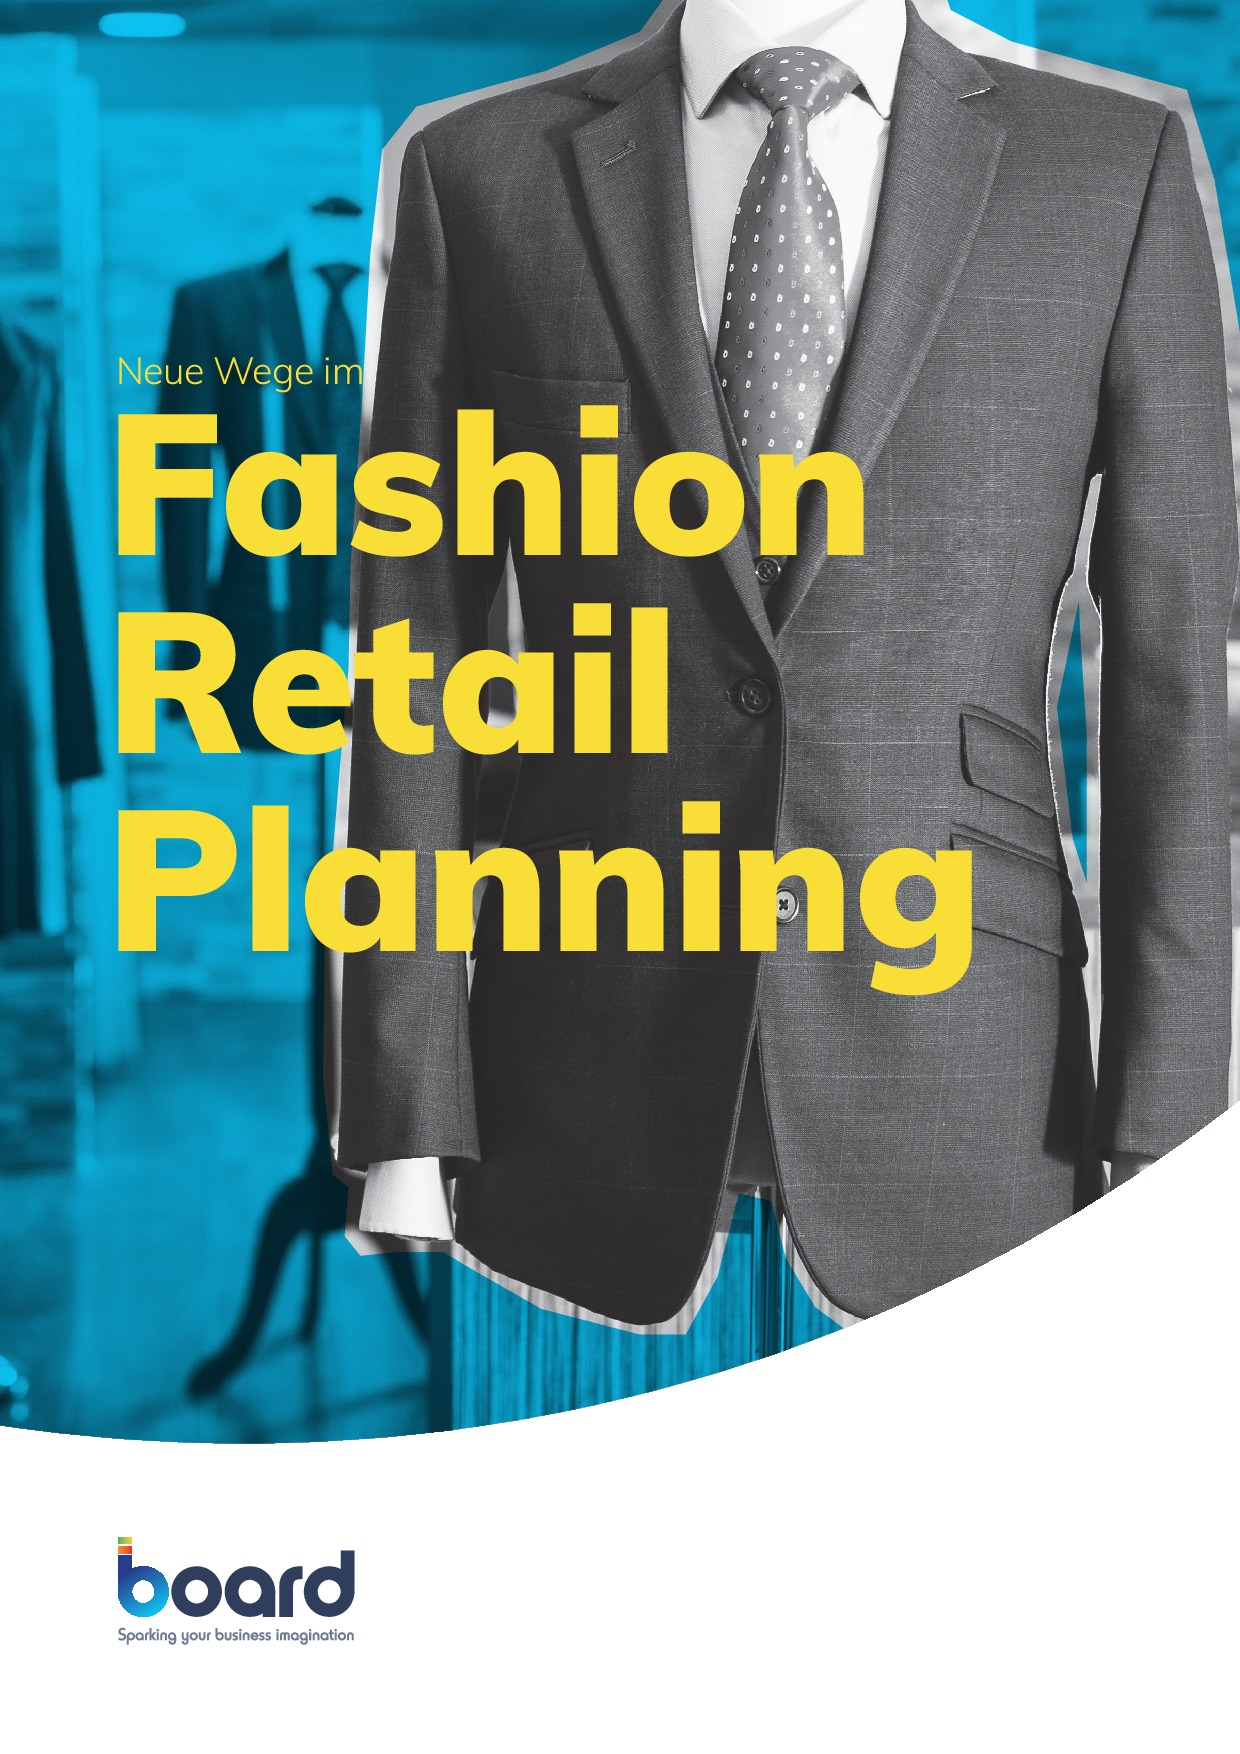 Neue Wege im Fashion Retail Planning | Page 1